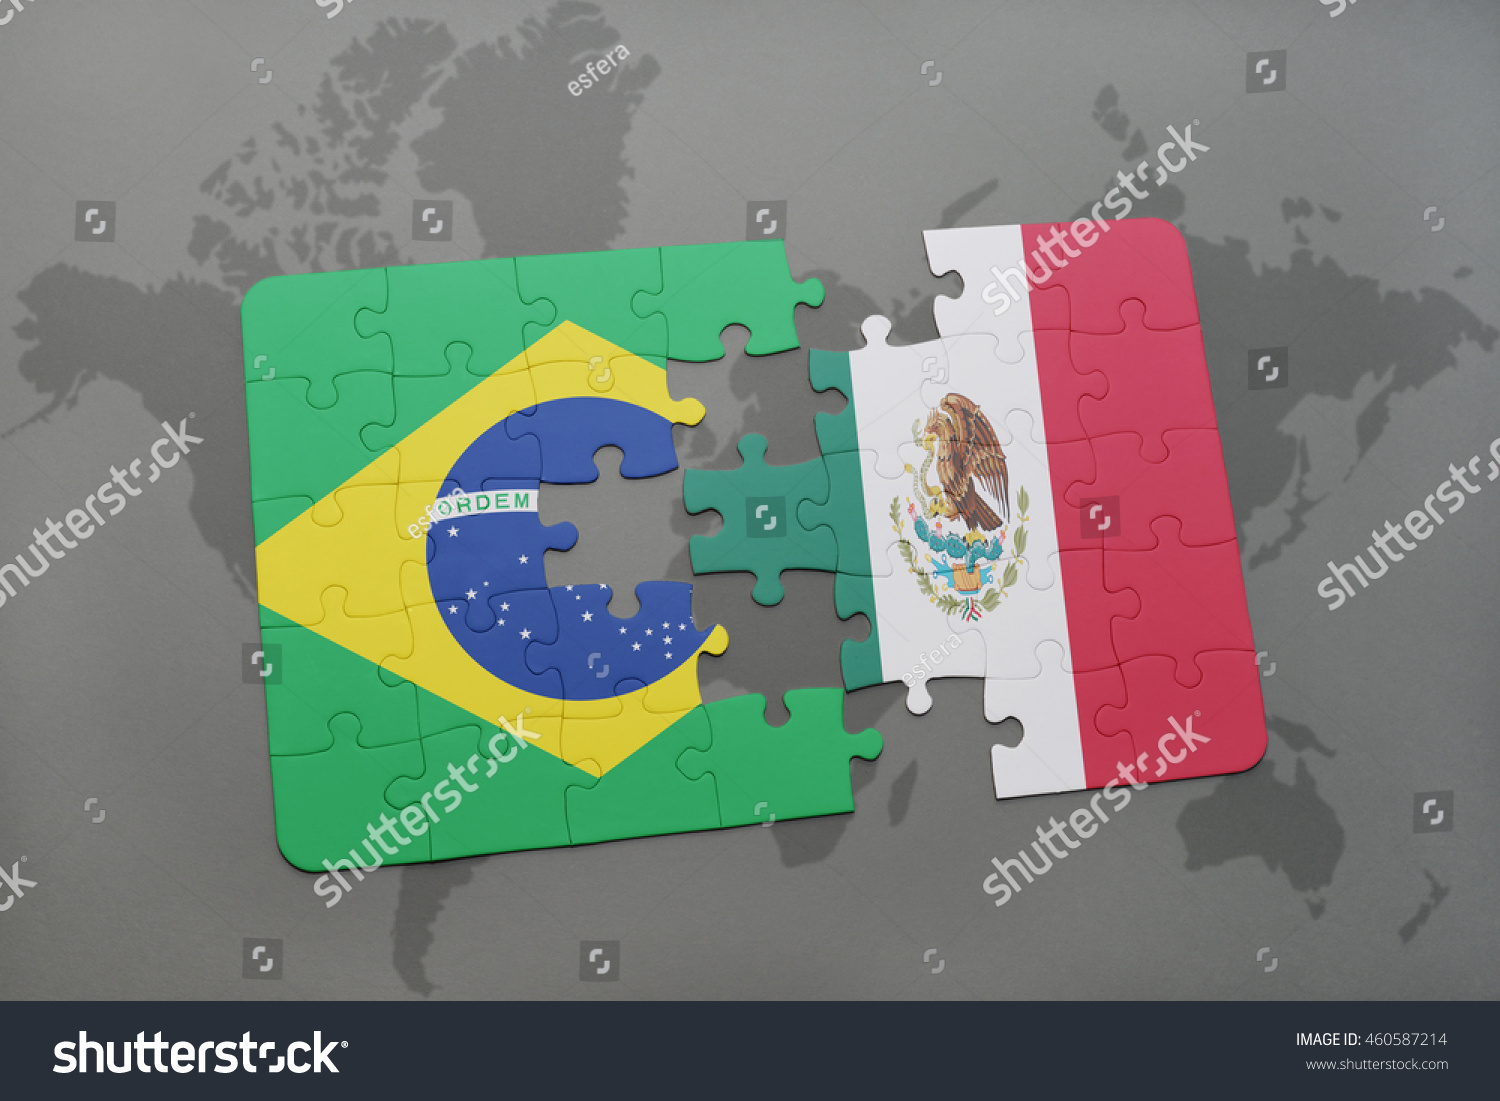 Puzzle national flag brazil mexico on stock illustration 460587214 puzzle with the national flag of brazil and mexico on a world map background 3d gumiabroncs Image collections